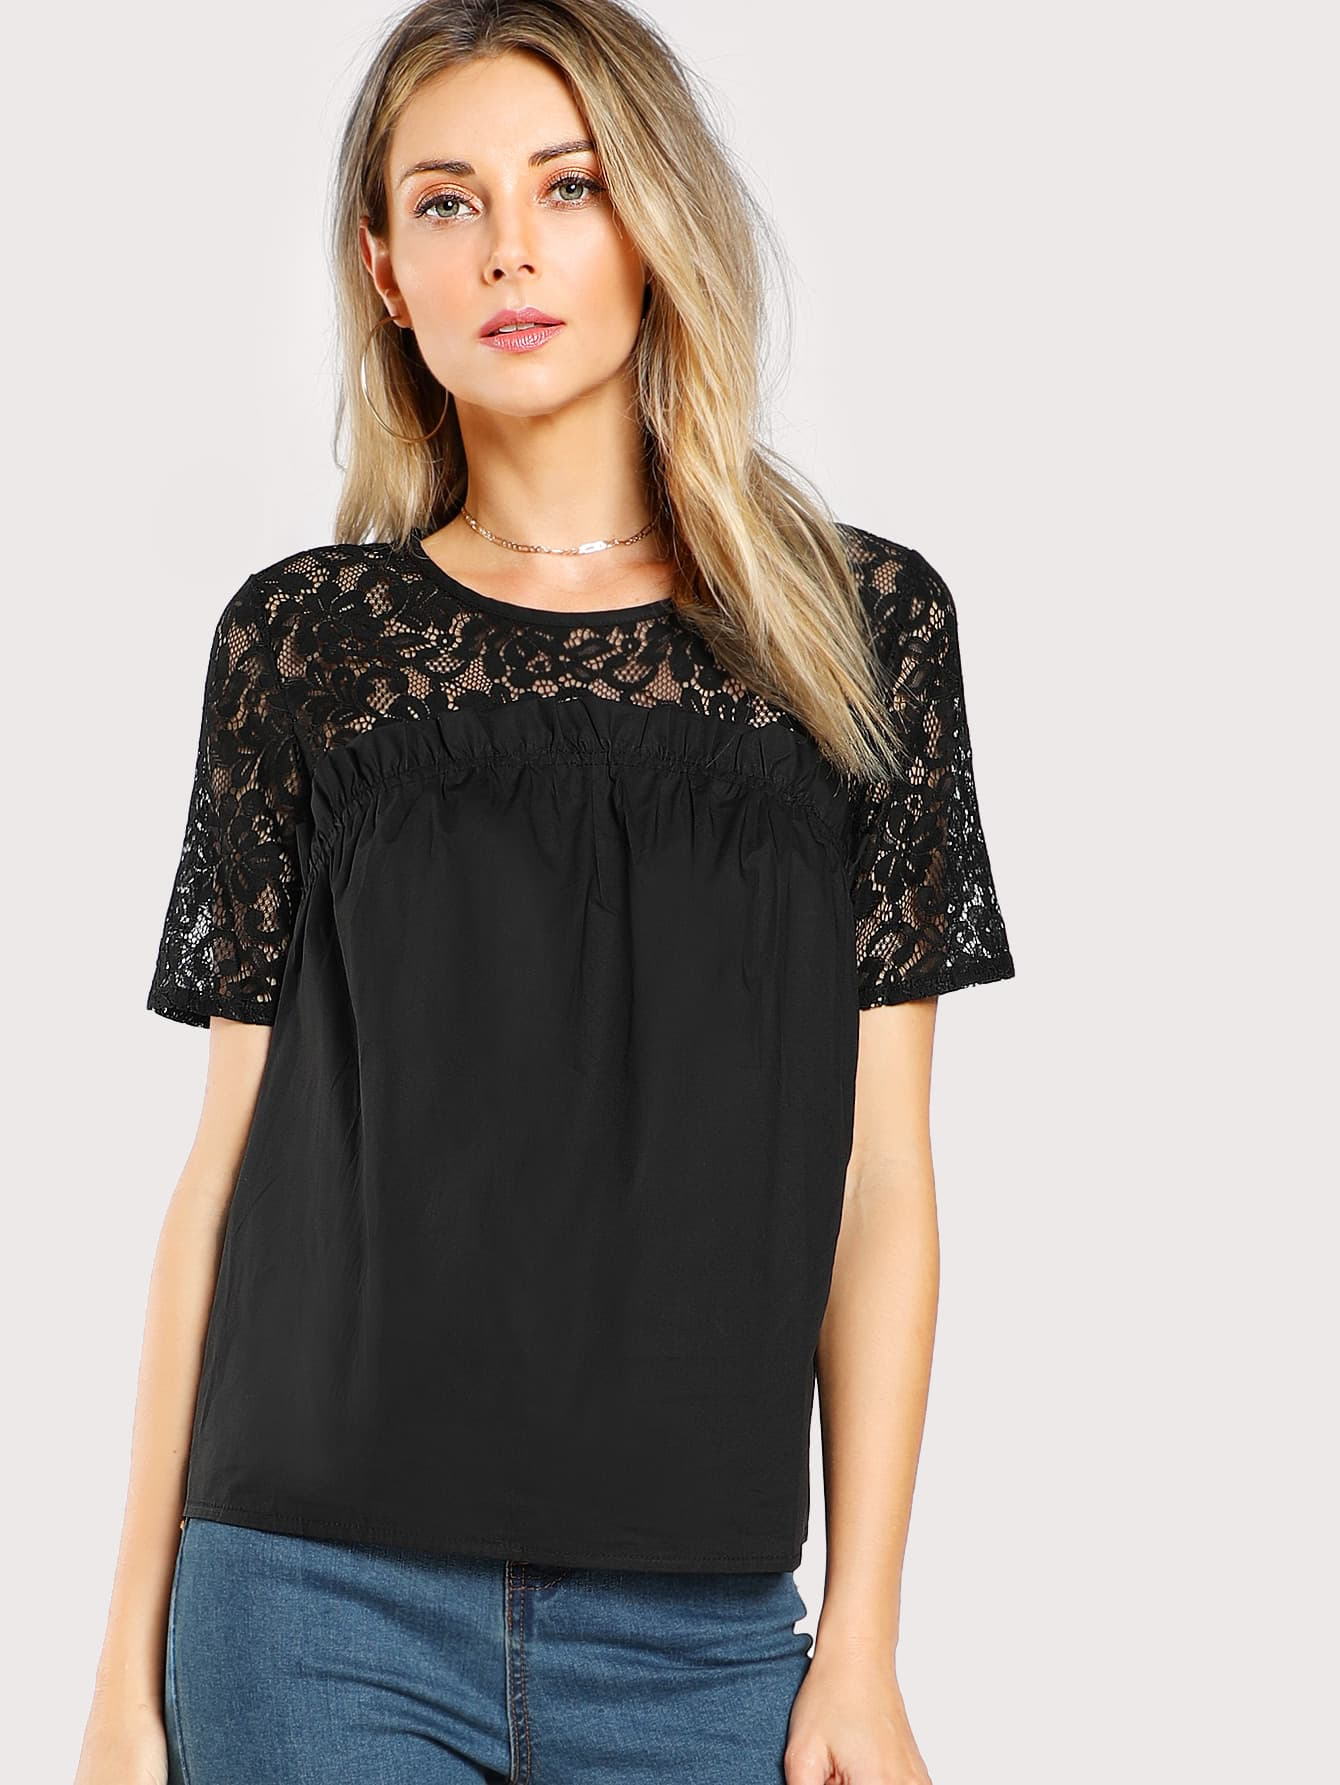 Floral Lace Yoke Frill Detail Blouse pearl beading frill detail sweatshirt